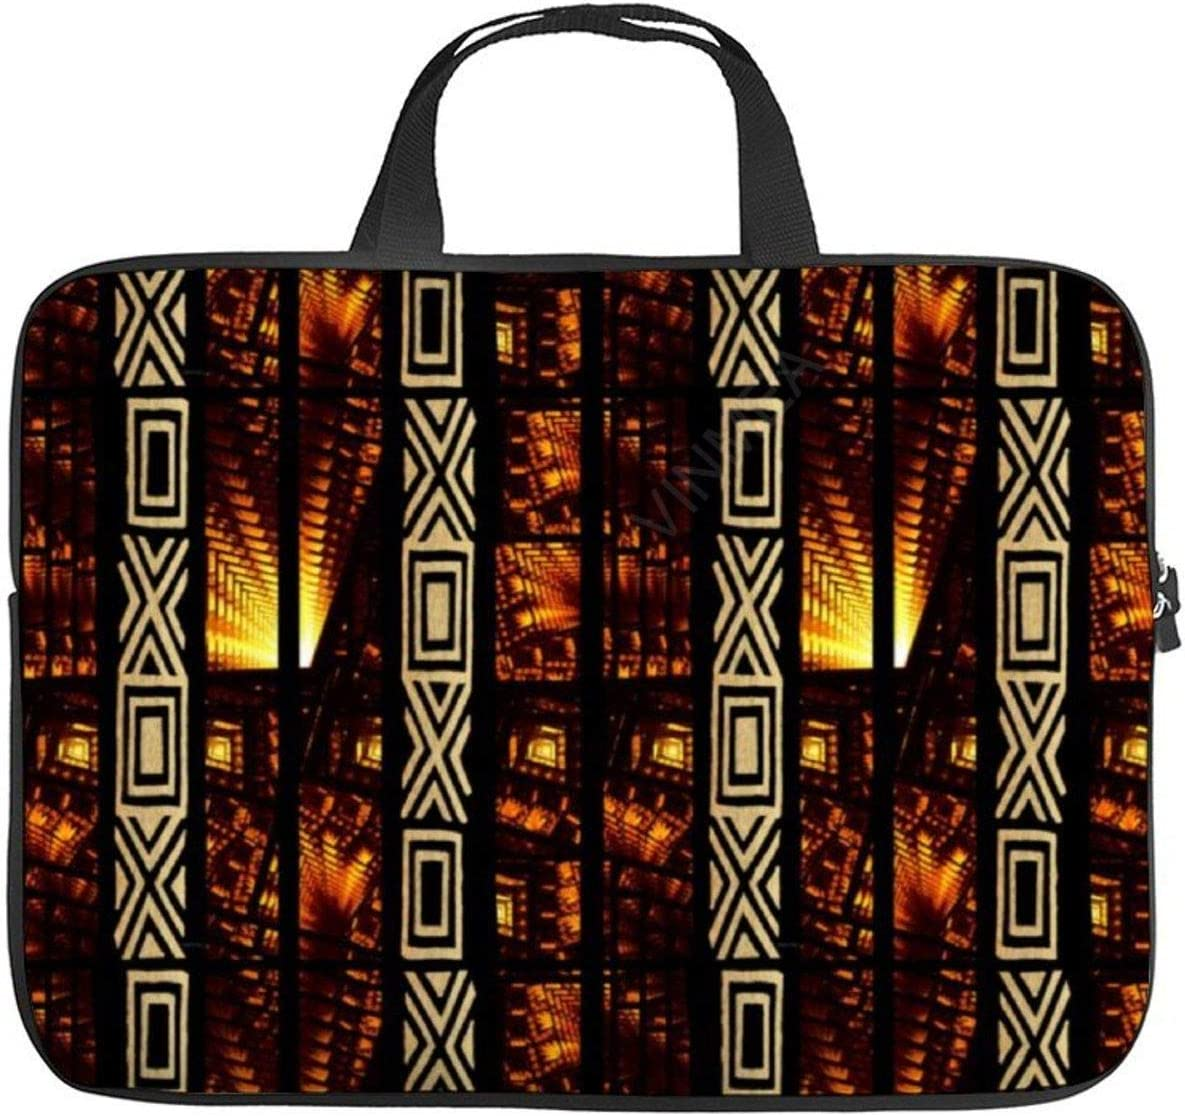 15 Inch Laptop Bag with Handle African Tribal Tapestry Motif Laptop Briefcase for Office School Men & Women Teens